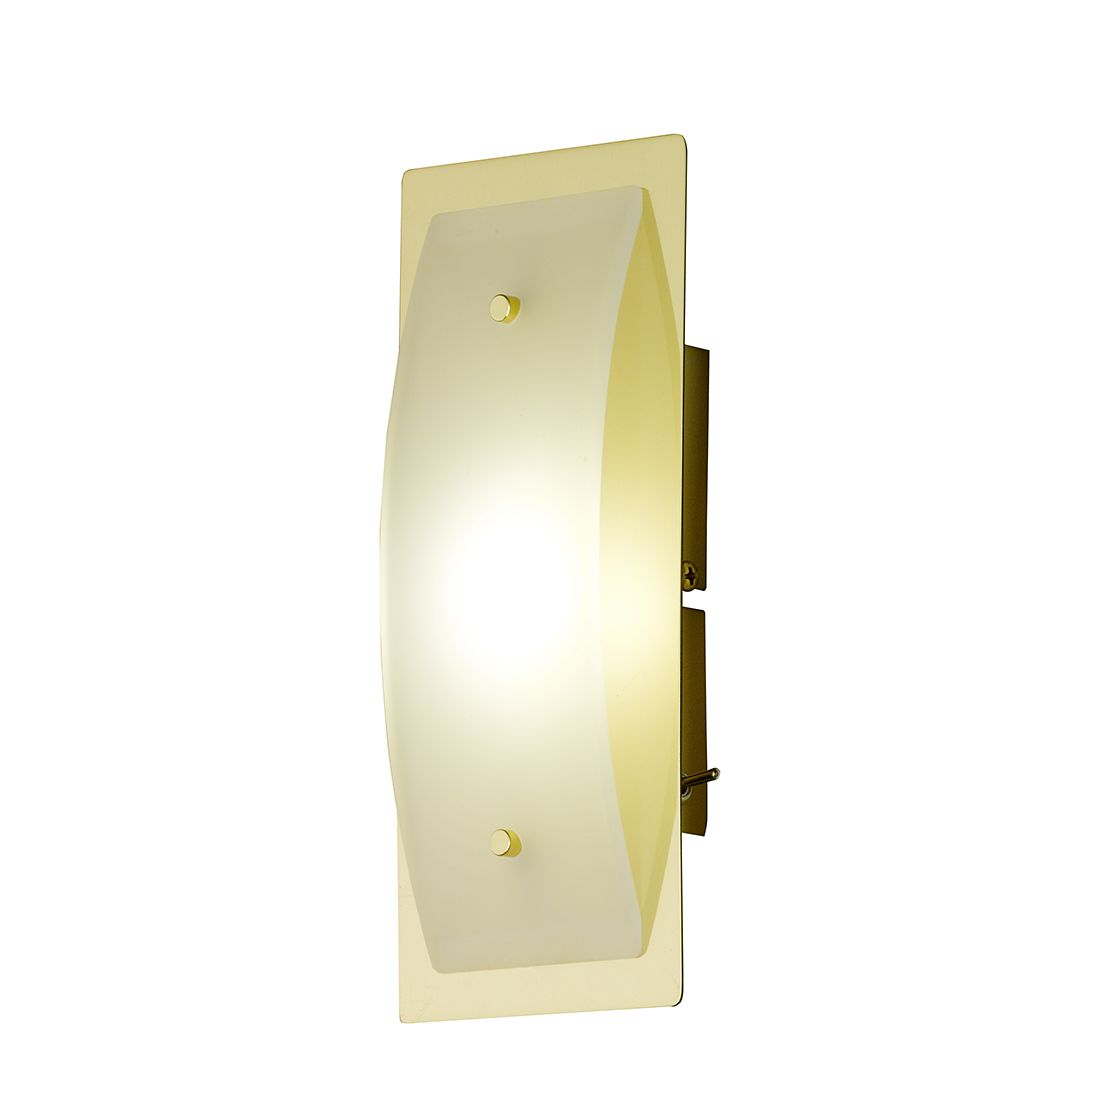 EEK A+, LED-Wandleuchte Liana Metall Gold - 1-flammig, Honsel